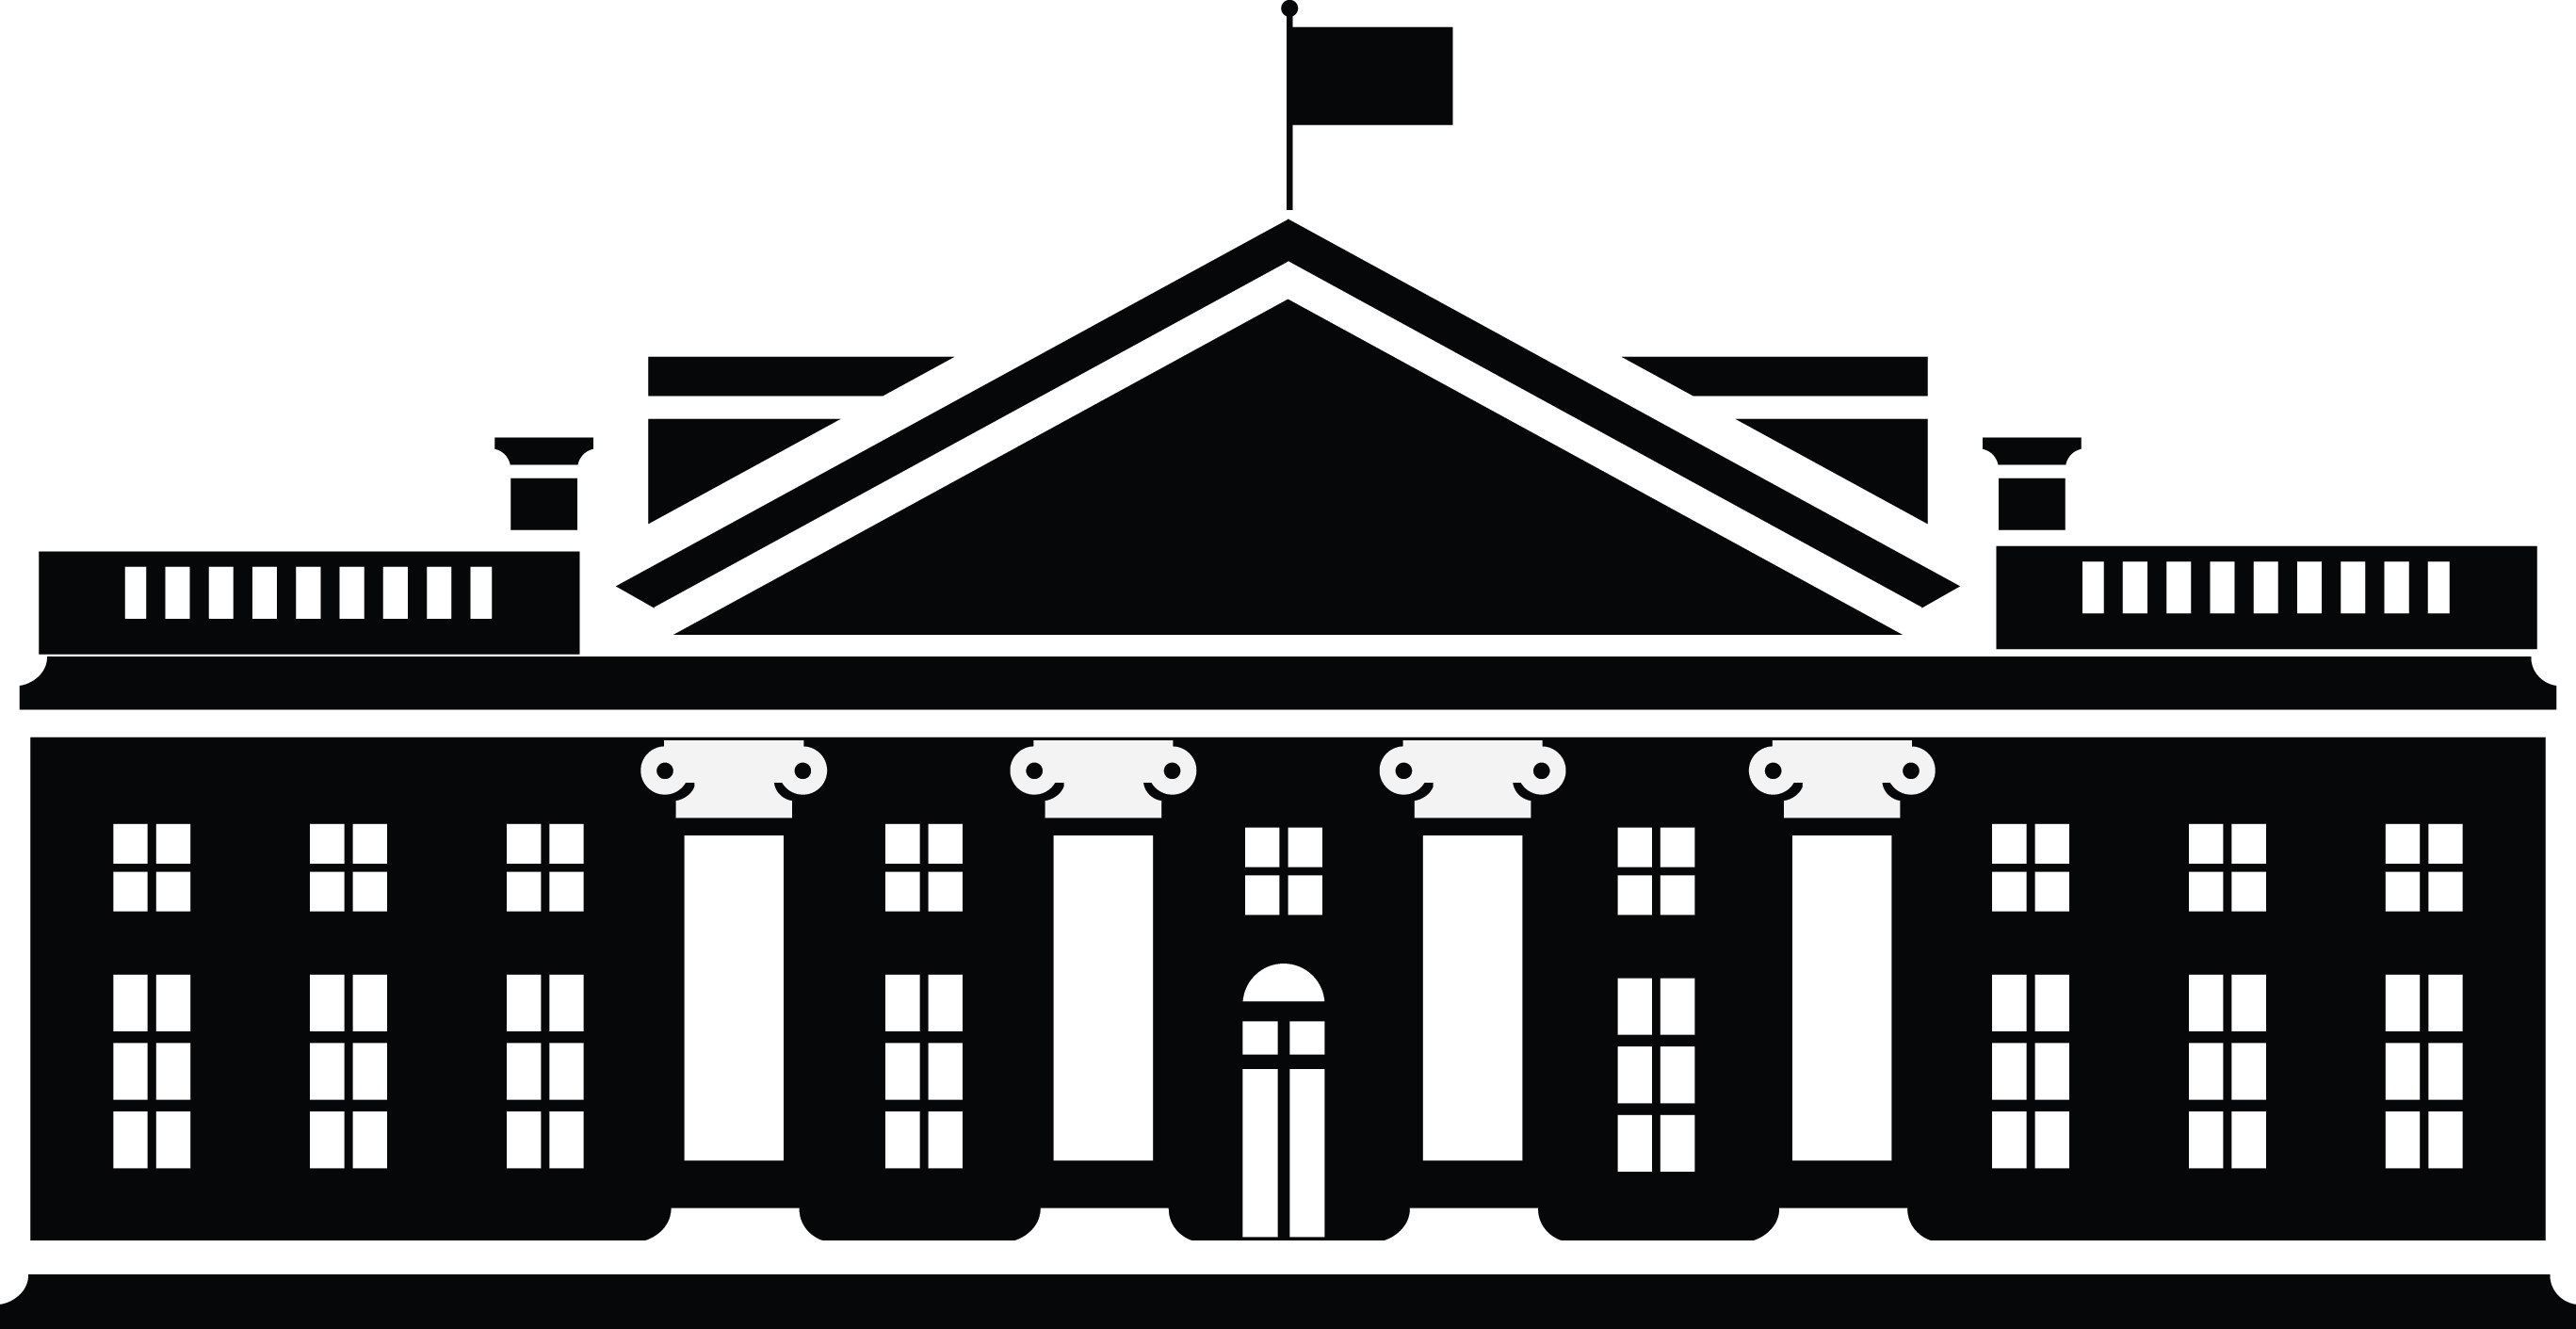 Transparent white house clipart banner download White House PNG Images Transparent Free Download | PNGMart.com banner download